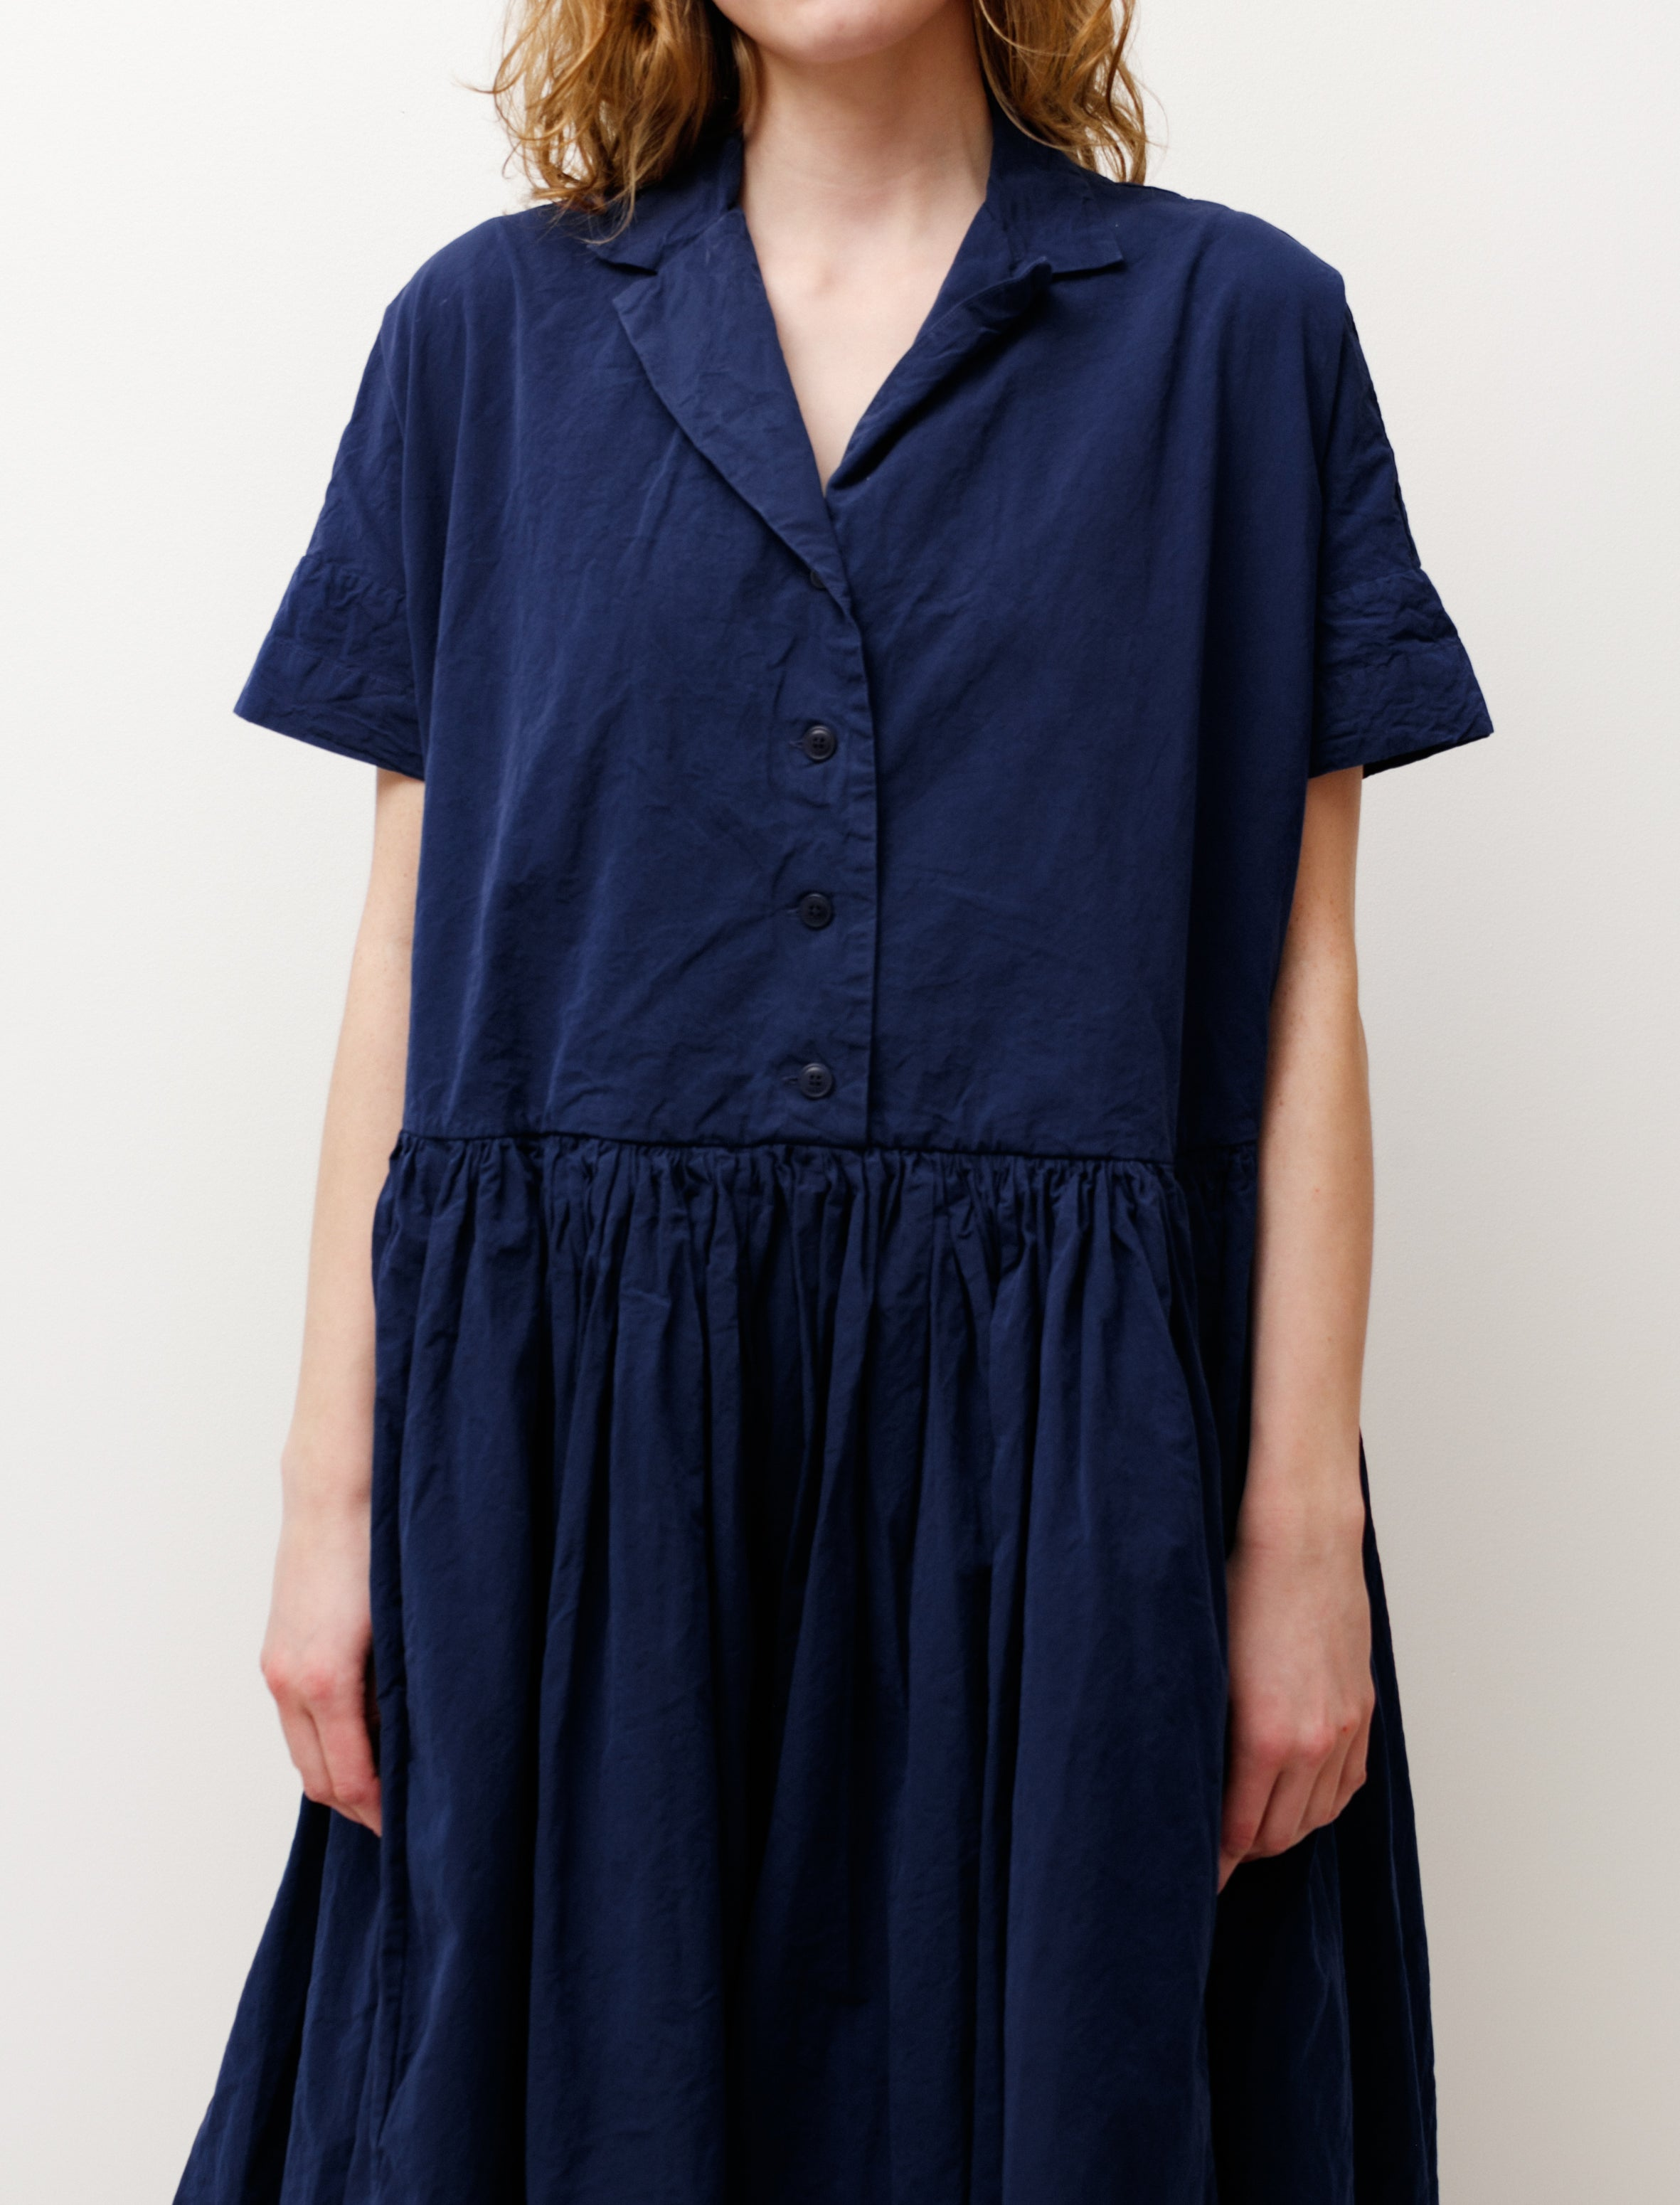 Our Legacy Suede Zip Shirt Sand